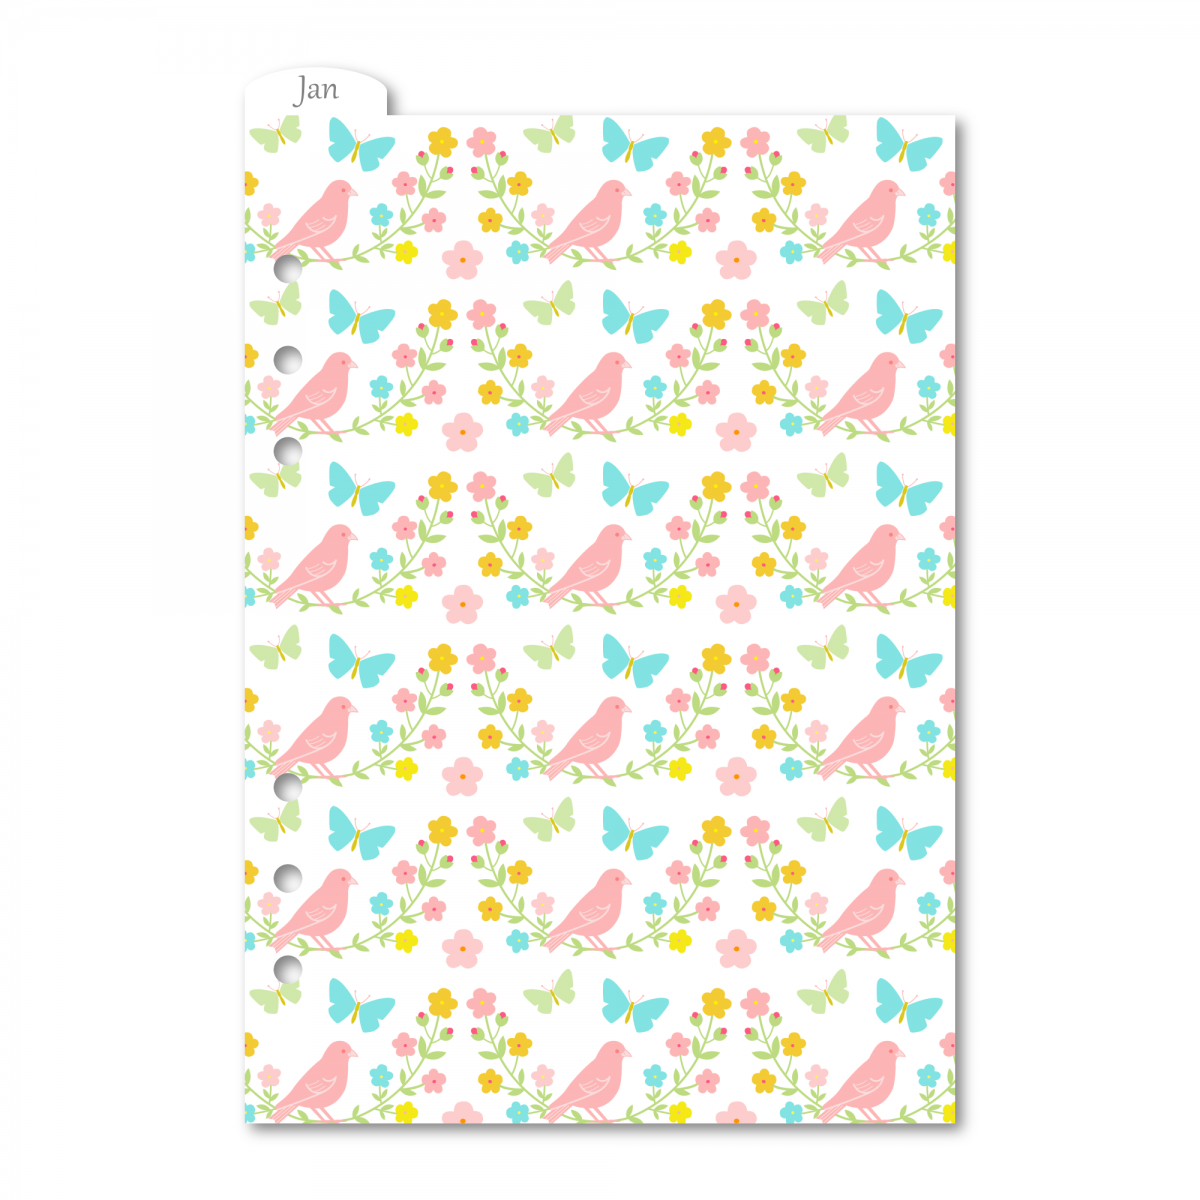 RINGBOUND 12 MONTHS PLASTIC DIVIDERS A5 (LARGE) - GARDEN